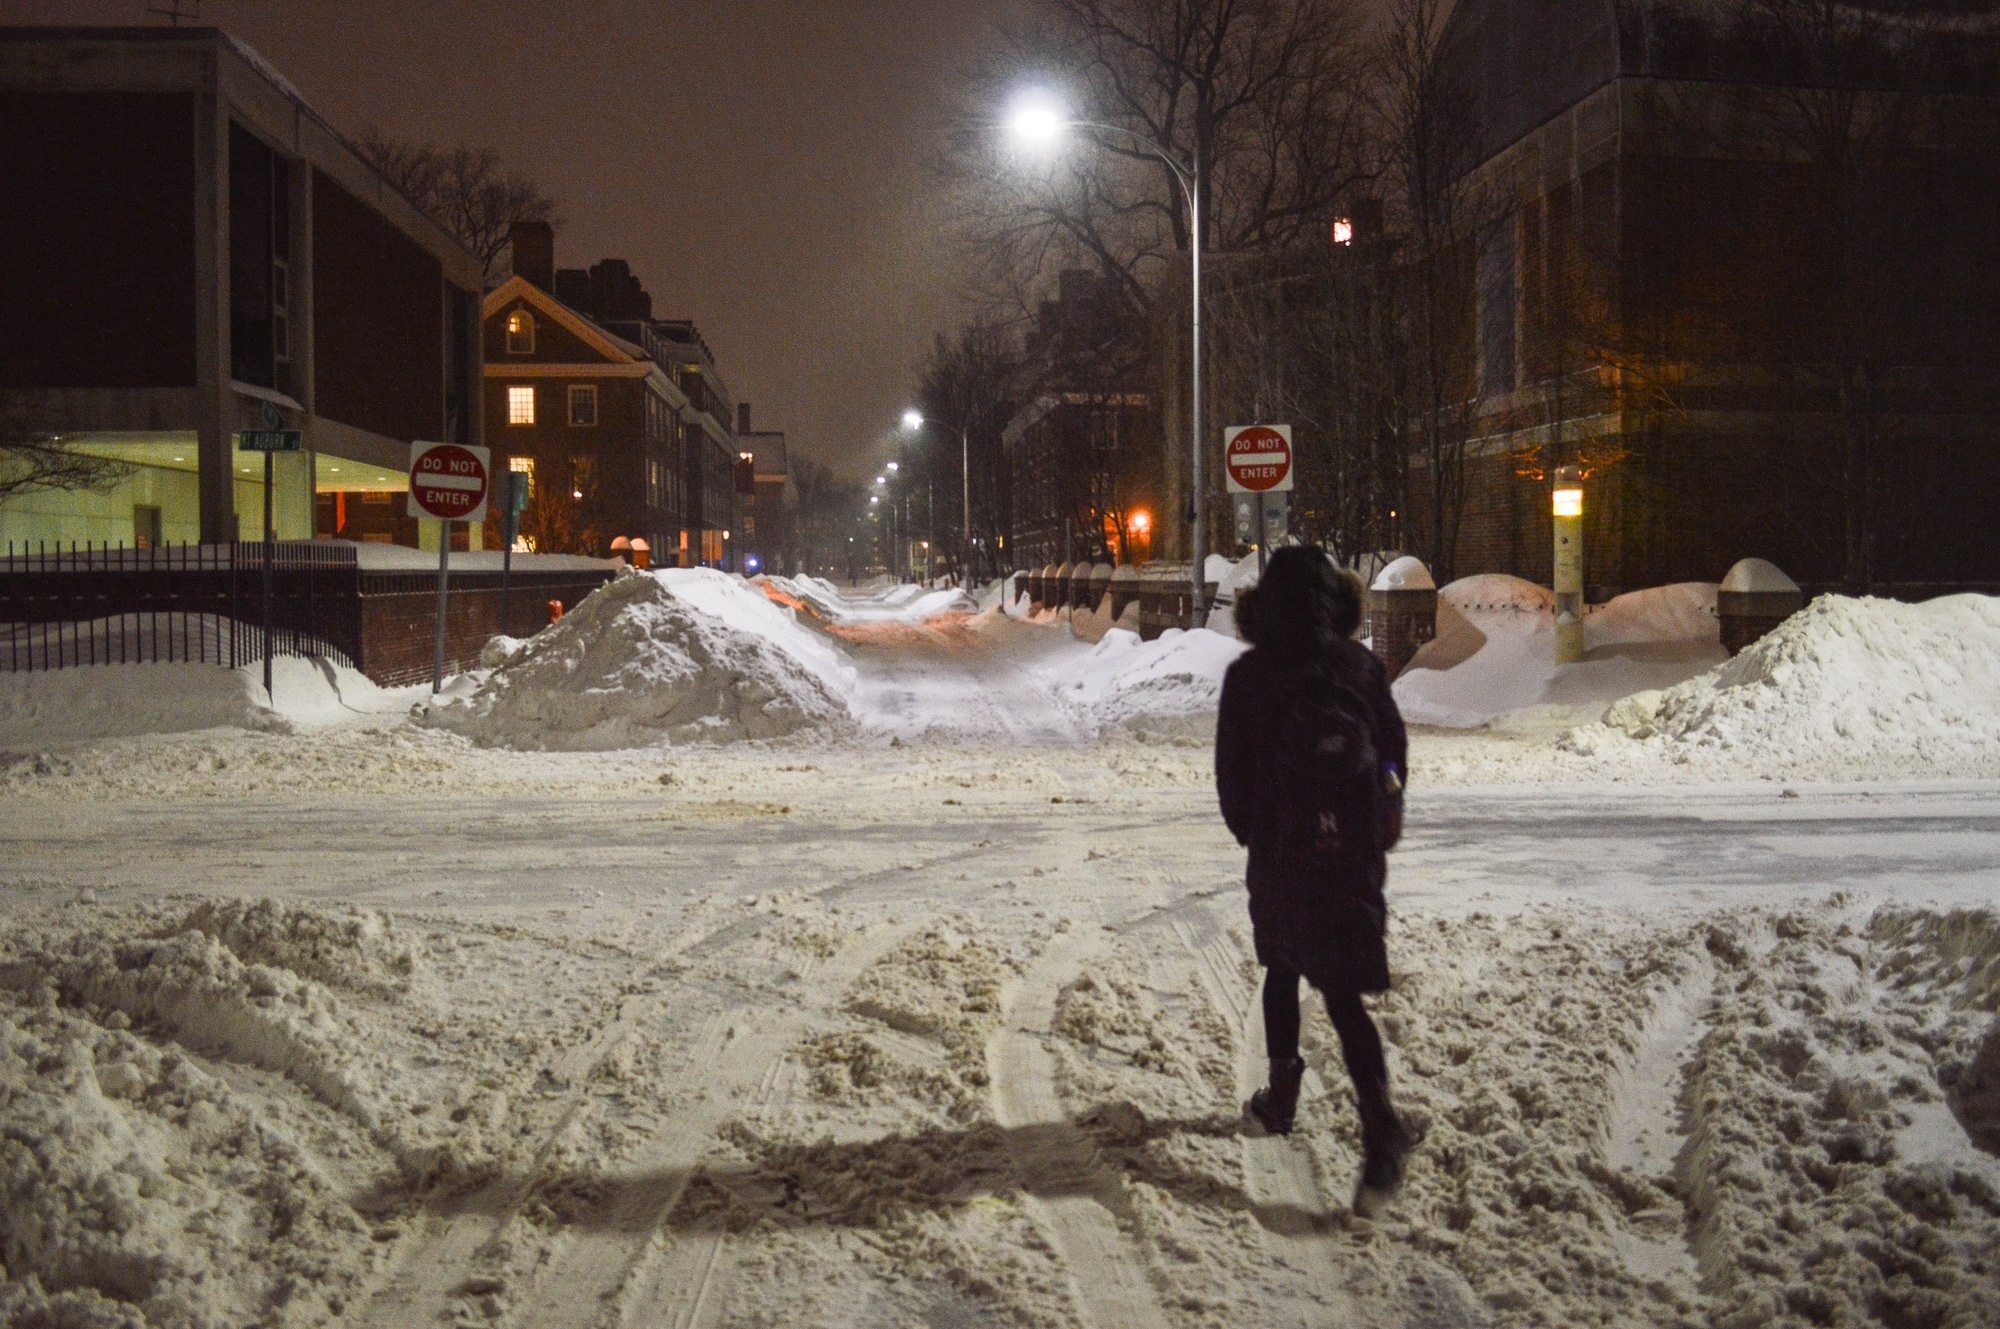 A student walks down Plympton St. on Monday evening, flanked by growing piles of snow. Amid forecasts of more wintry weather, administrators made the decision to suspend most operations at the University on Tuesday.